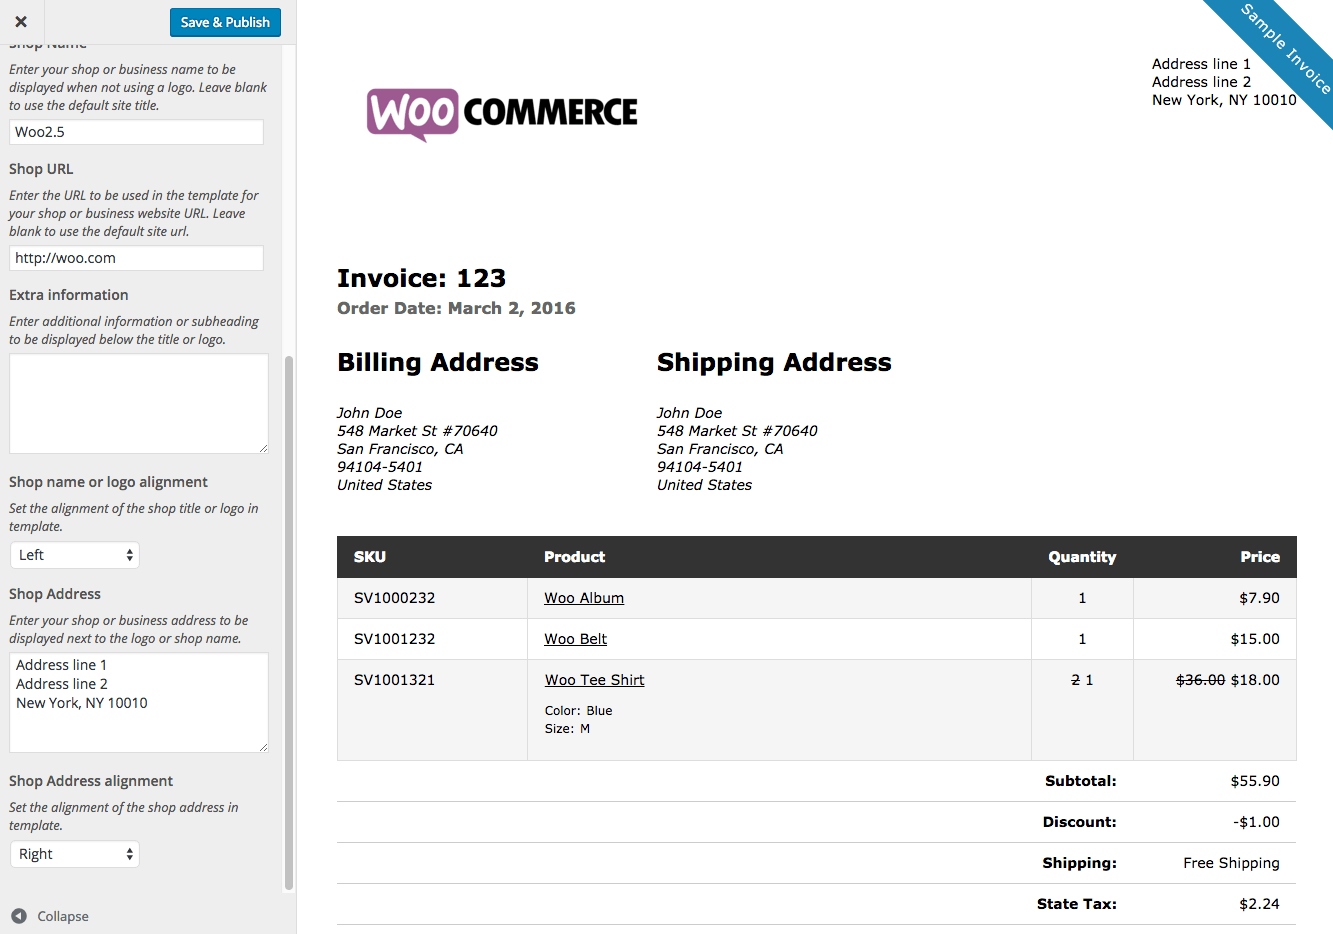 Aldiablosus  Pretty Woocommerce Print Invoices Amp Packing Lists  Woocommerce Docs With Inspiring Woocommerce Print Invoices  Packing Lists Customizer With Divine Commercial Shipping Invoice Also Canadian Invoice Template In Addition Invoice By Vin And Invoices In Excel As Well As Purchase Invoices Additionally Commercial Invoice Canada From Docswoocommercecom With Aldiablosus  Inspiring Woocommerce Print Invoices Amp Packing Lists  Woocommerce Docs With Divine Woocommerce Print Invoices  Packing Lists Customizer And Pretty Commercial Shipping Invoice Also Canadian Invoice Template In Addition Invoice By Vin From Docswoocommercecom